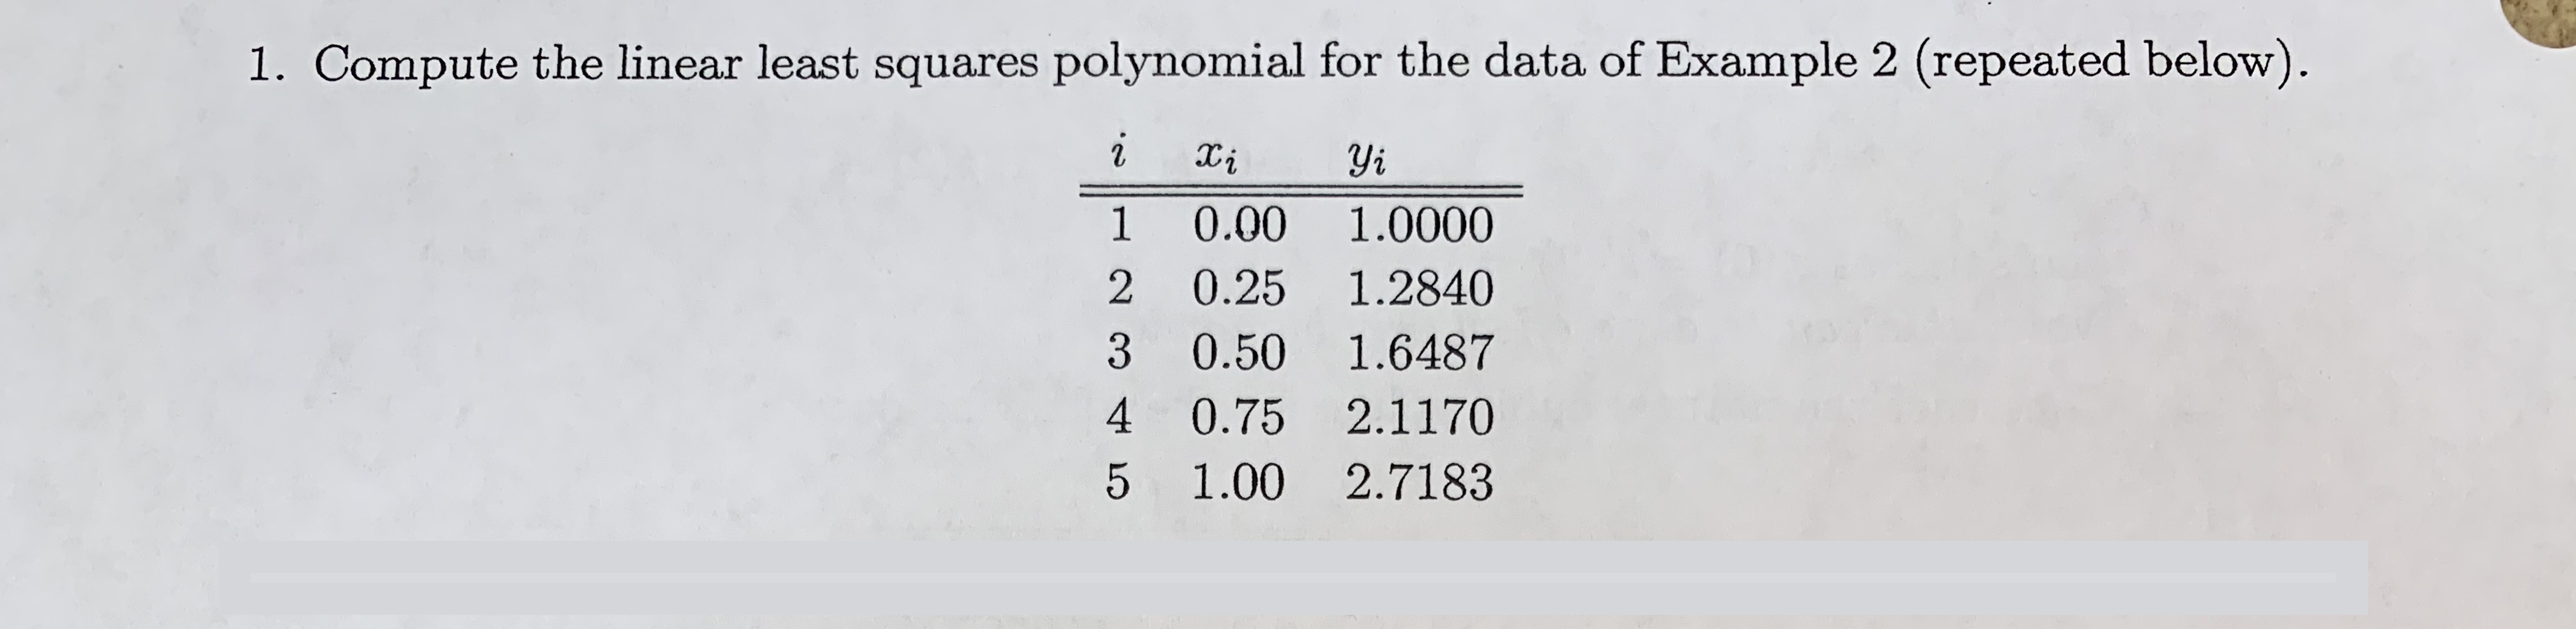 1. Compute the linear least squares polynomial for the data of Example 2 (repeated below). Yi 2 1 0.00 1.0000 2 0.25 1.2840 3 0.50 1.6487 4 0.75 2.1170 5 1.00 2.7183